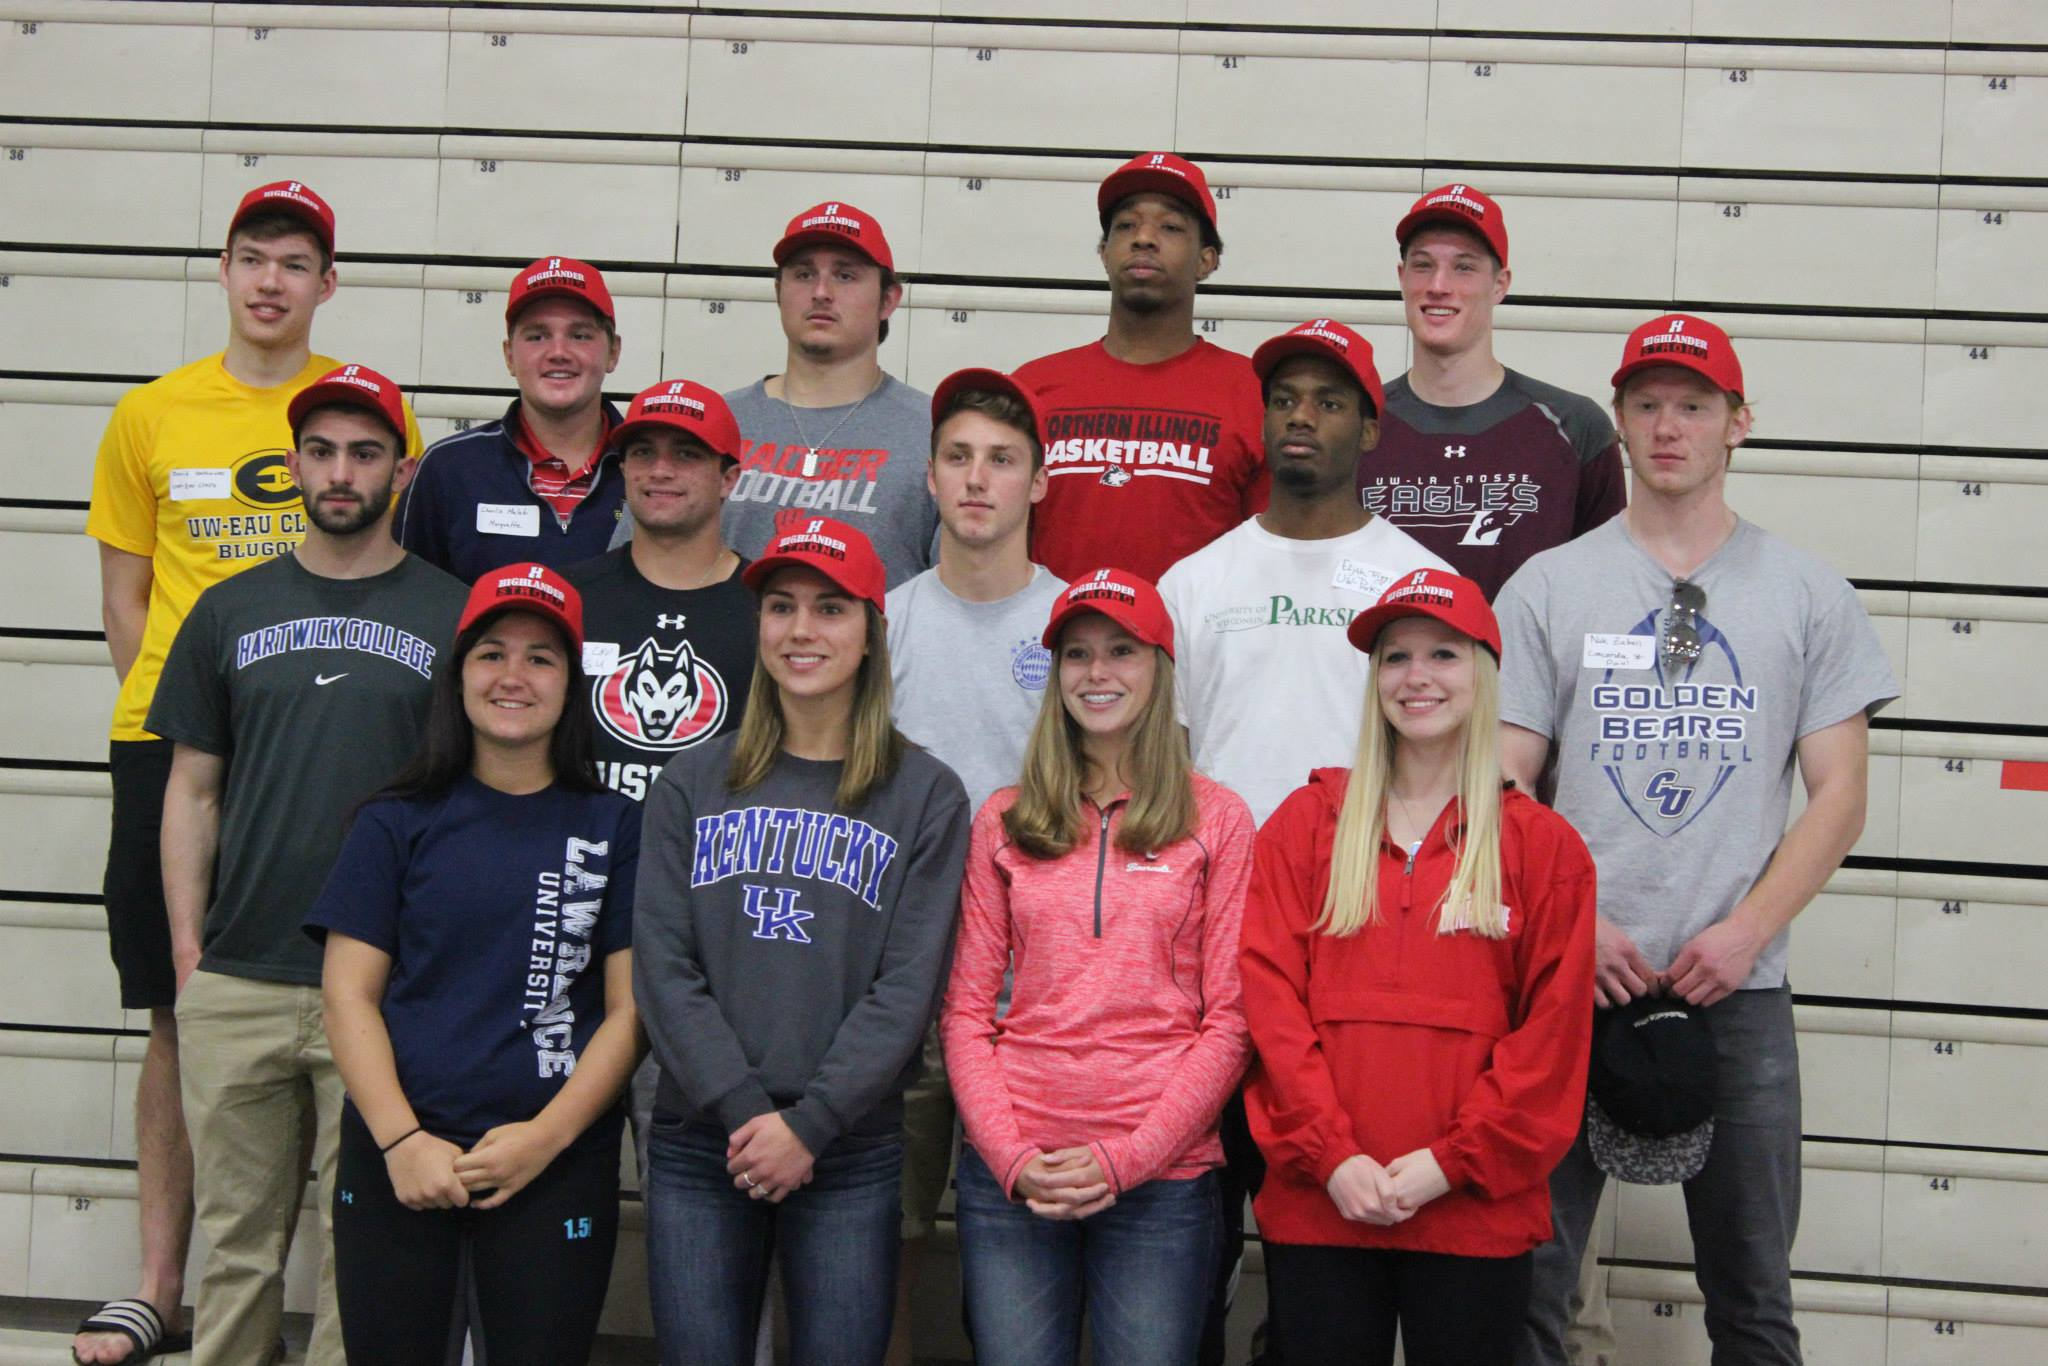 The athletes from the Class of '15 pictured at last year's Pancake Breakfast.